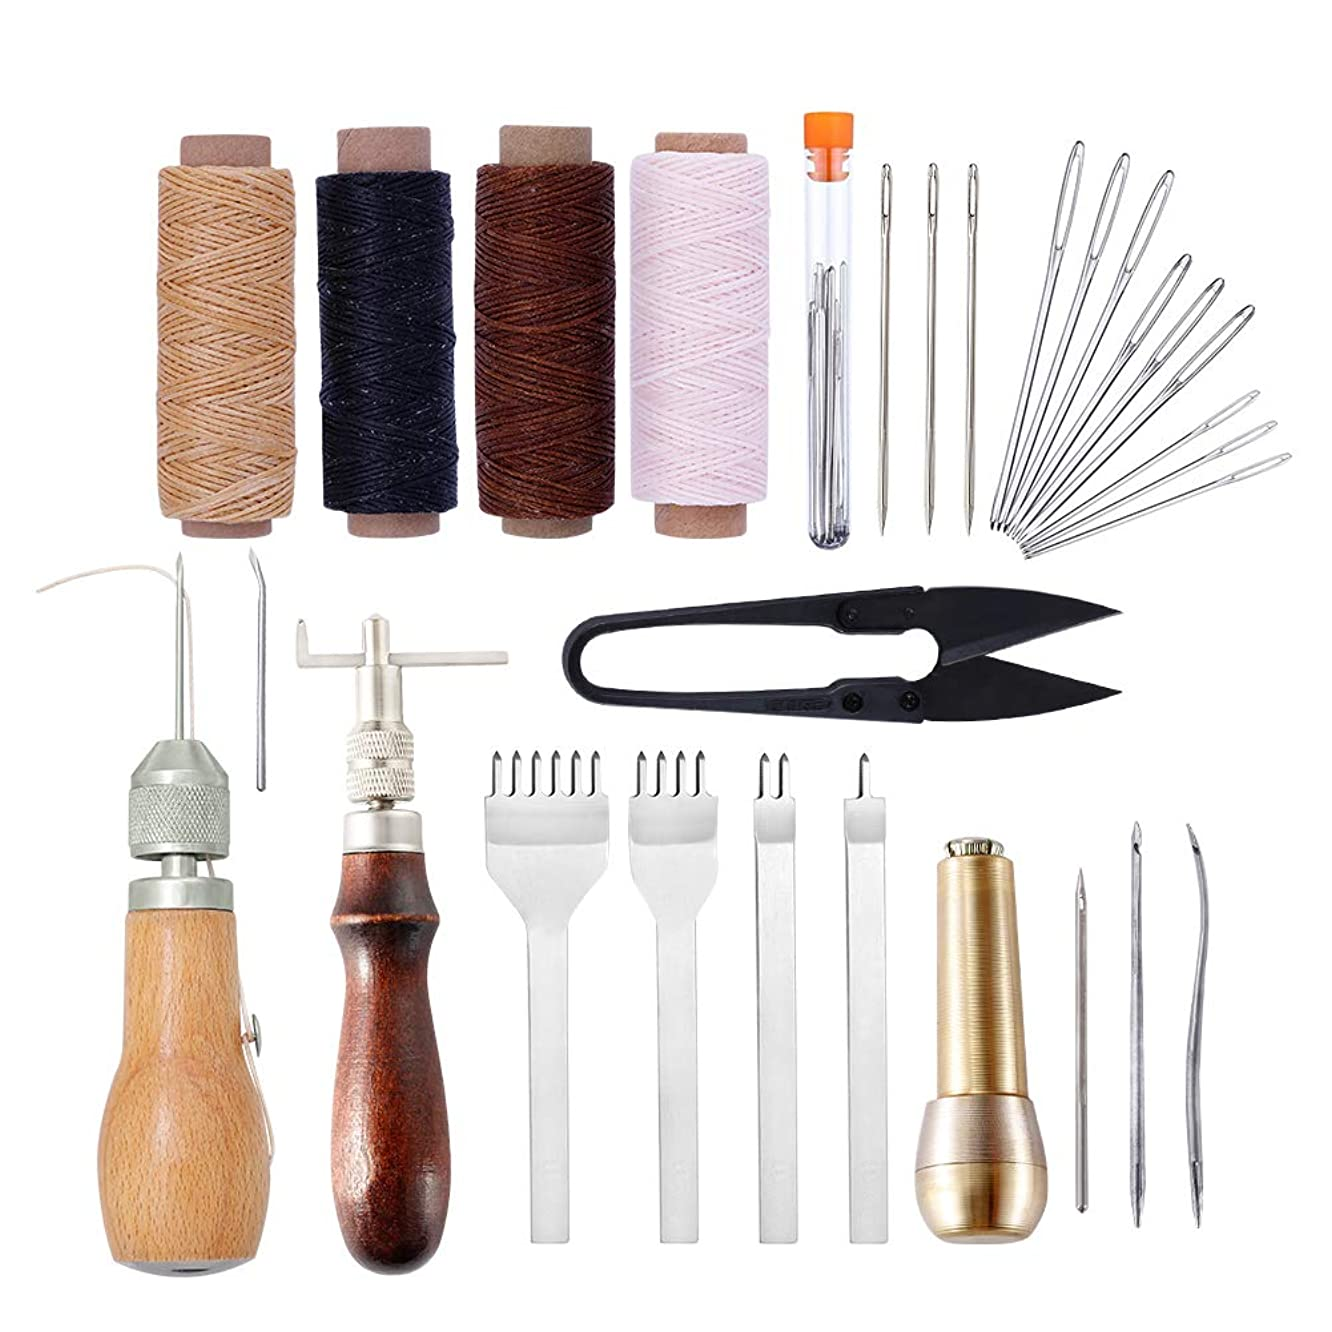 25Pieces Leather Working Tools, Speedy Stitcher with Waxed Thread,Scissors,Stitching Needle for Hand Sewing Stitching, Stamping Set and Saddle Making,Leather DIY